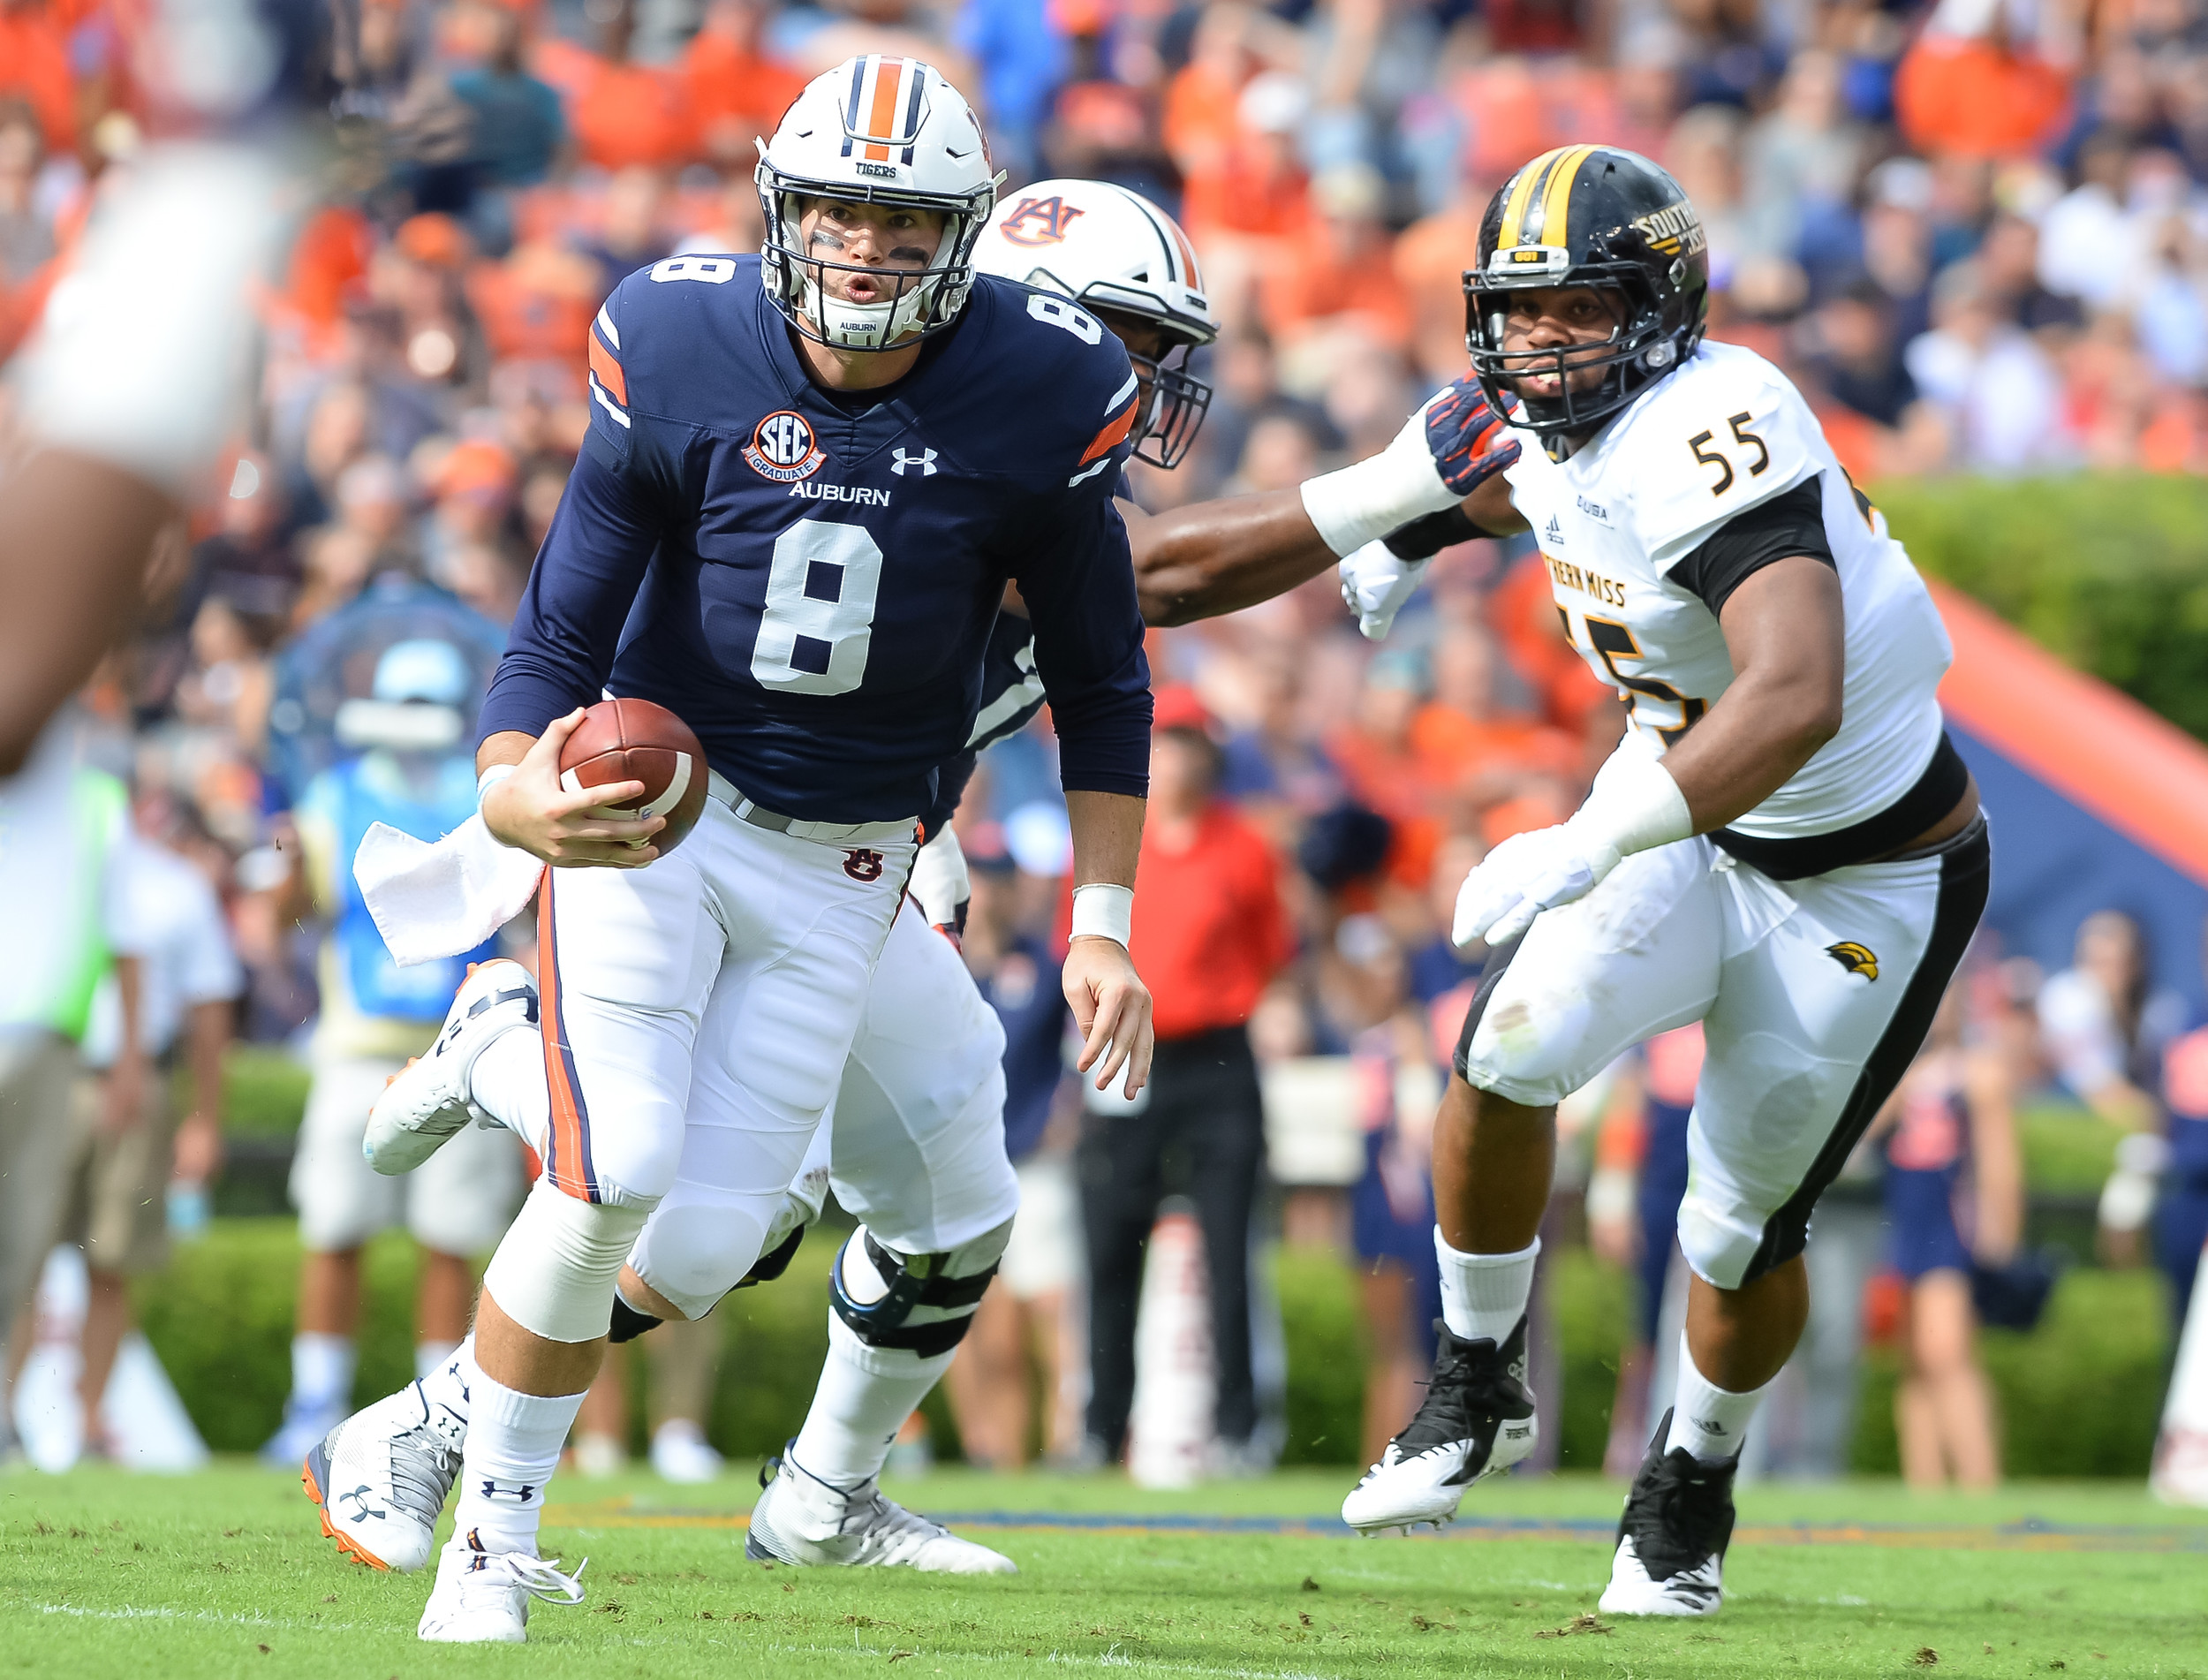 Auburn Tigers quarterback Jarrett Stidham (8) runs during the first half of Saturday's game, at Jordan Hare Stadium in Auburn AL. Daily Mountain Eagle -  Jeff Johnsey